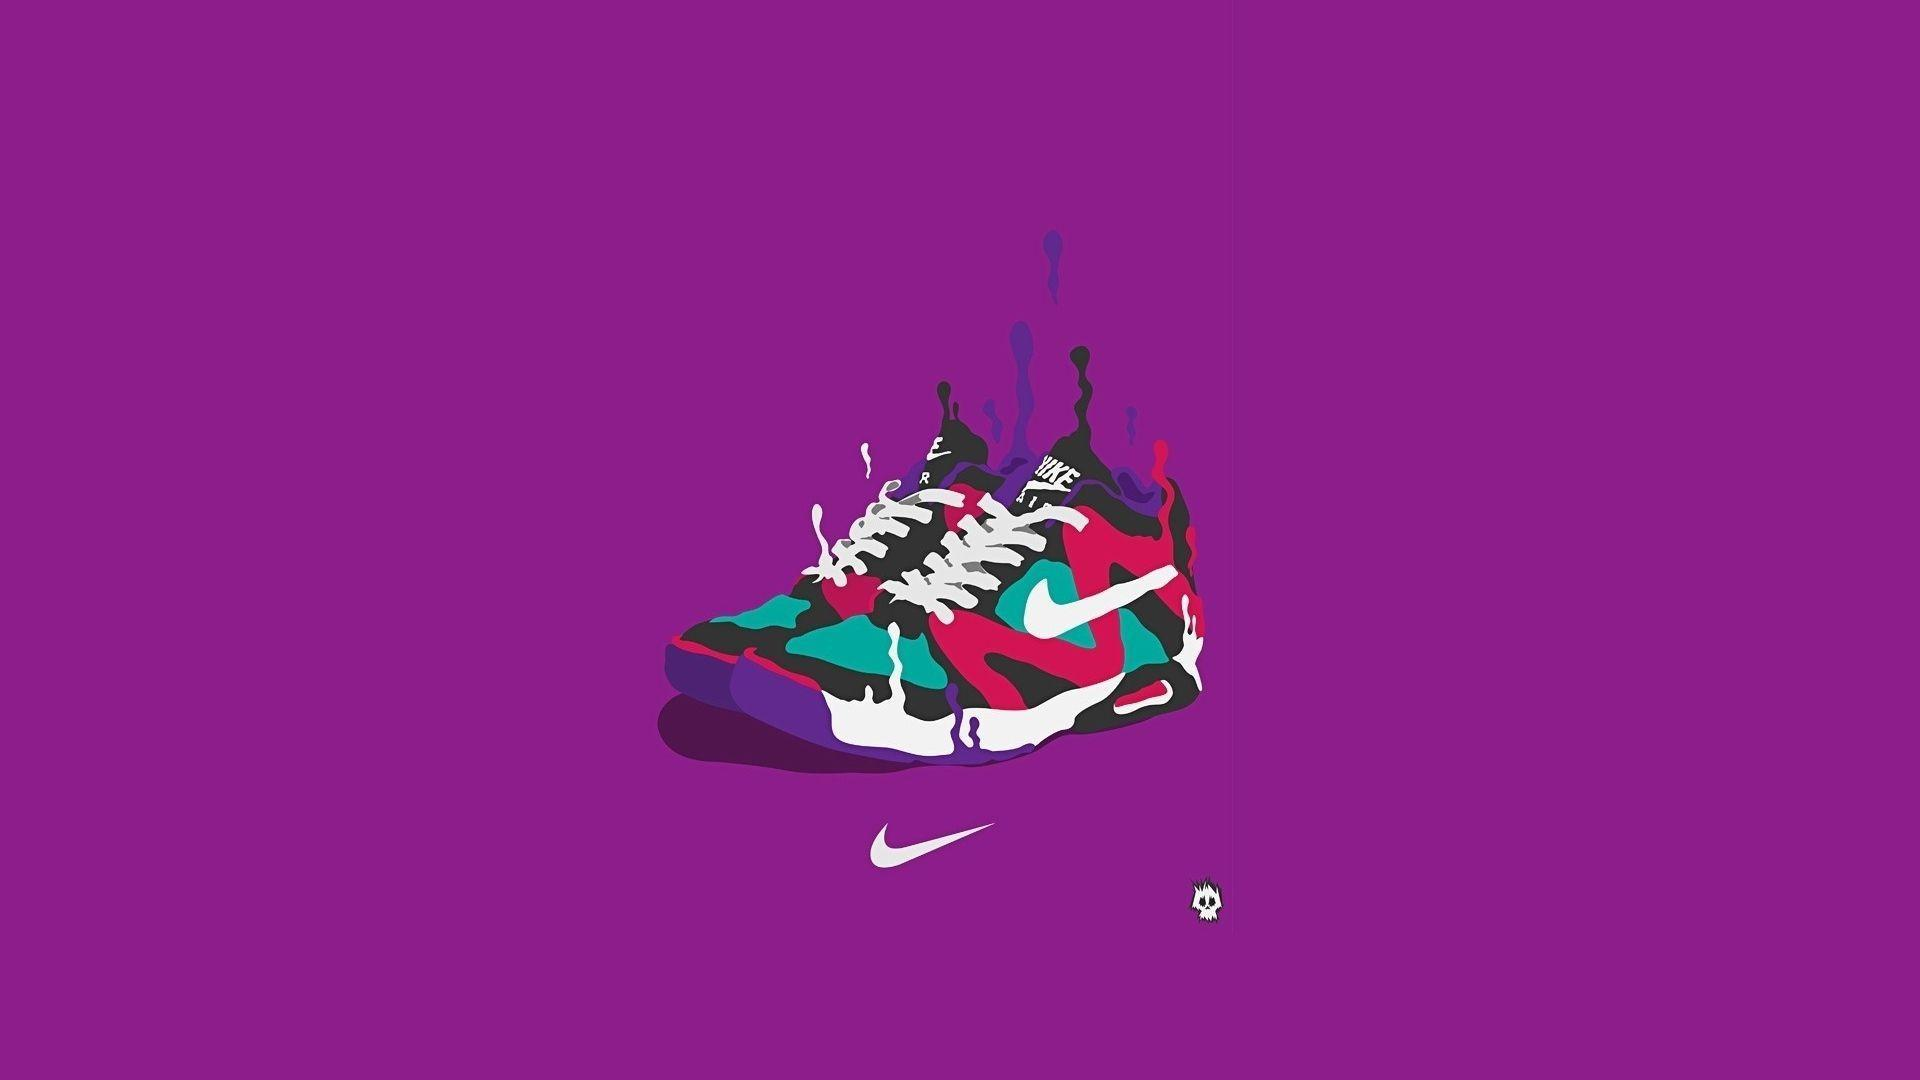 Nike Wallpapers HD 2016 - Wallpaper Cave